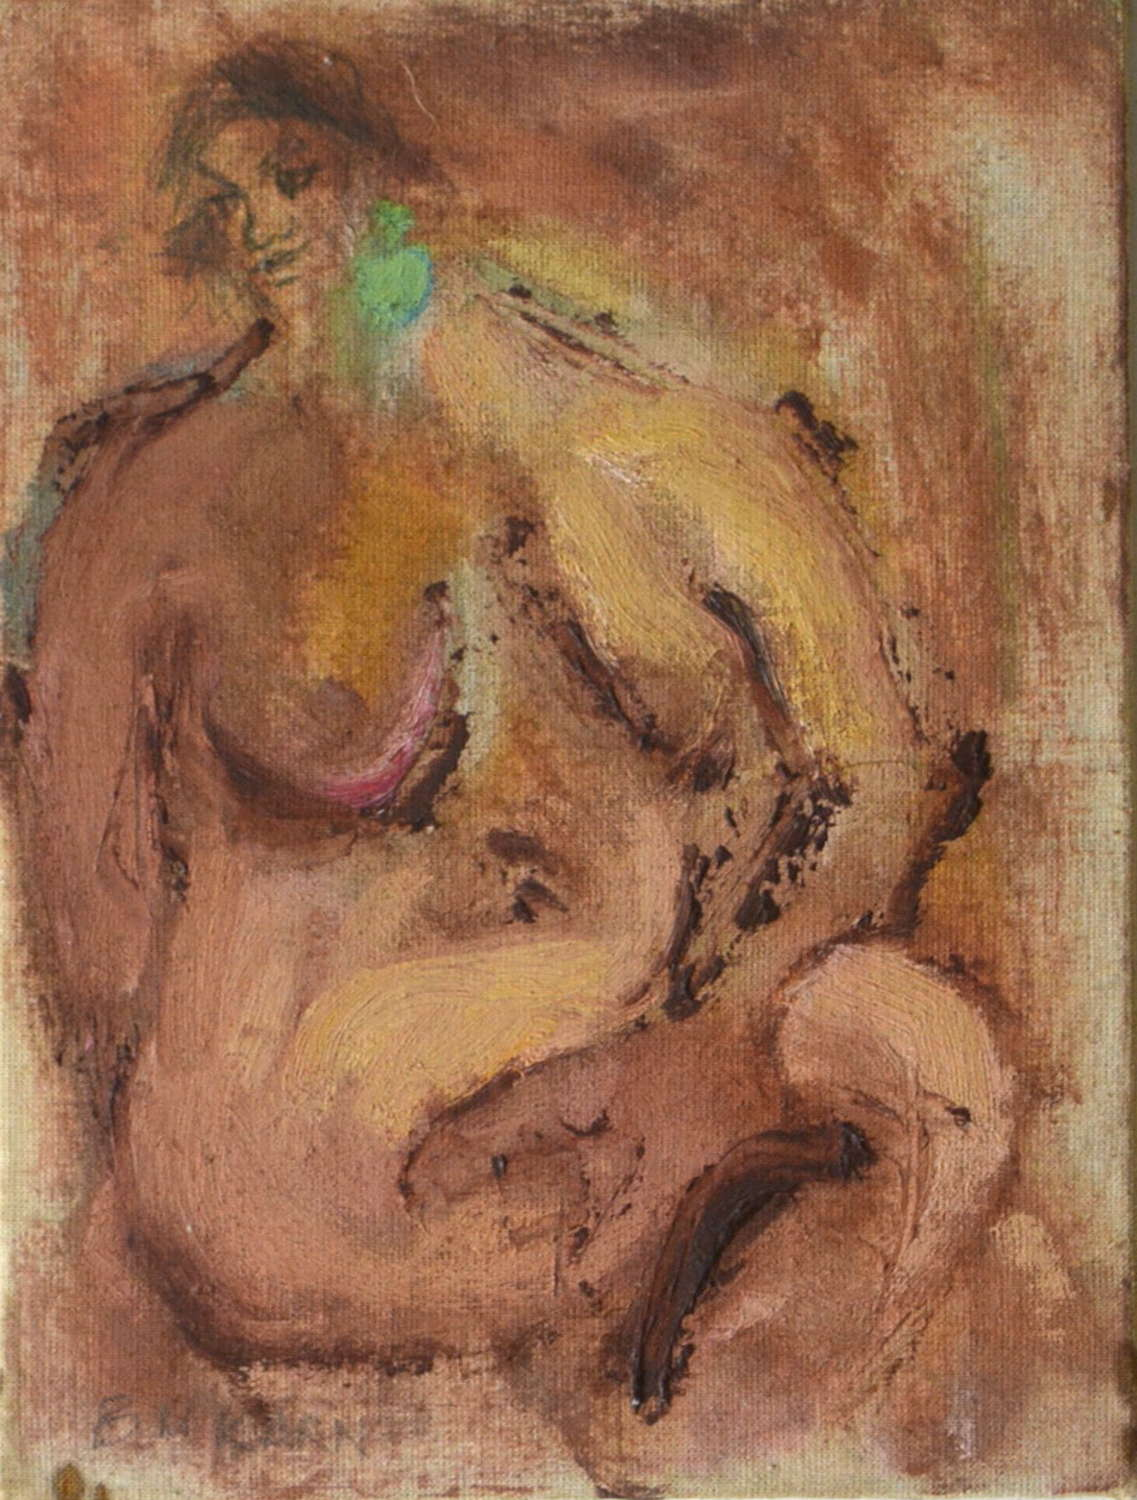 ABSTRACT NUDE STUDY BY BARBARA KARN